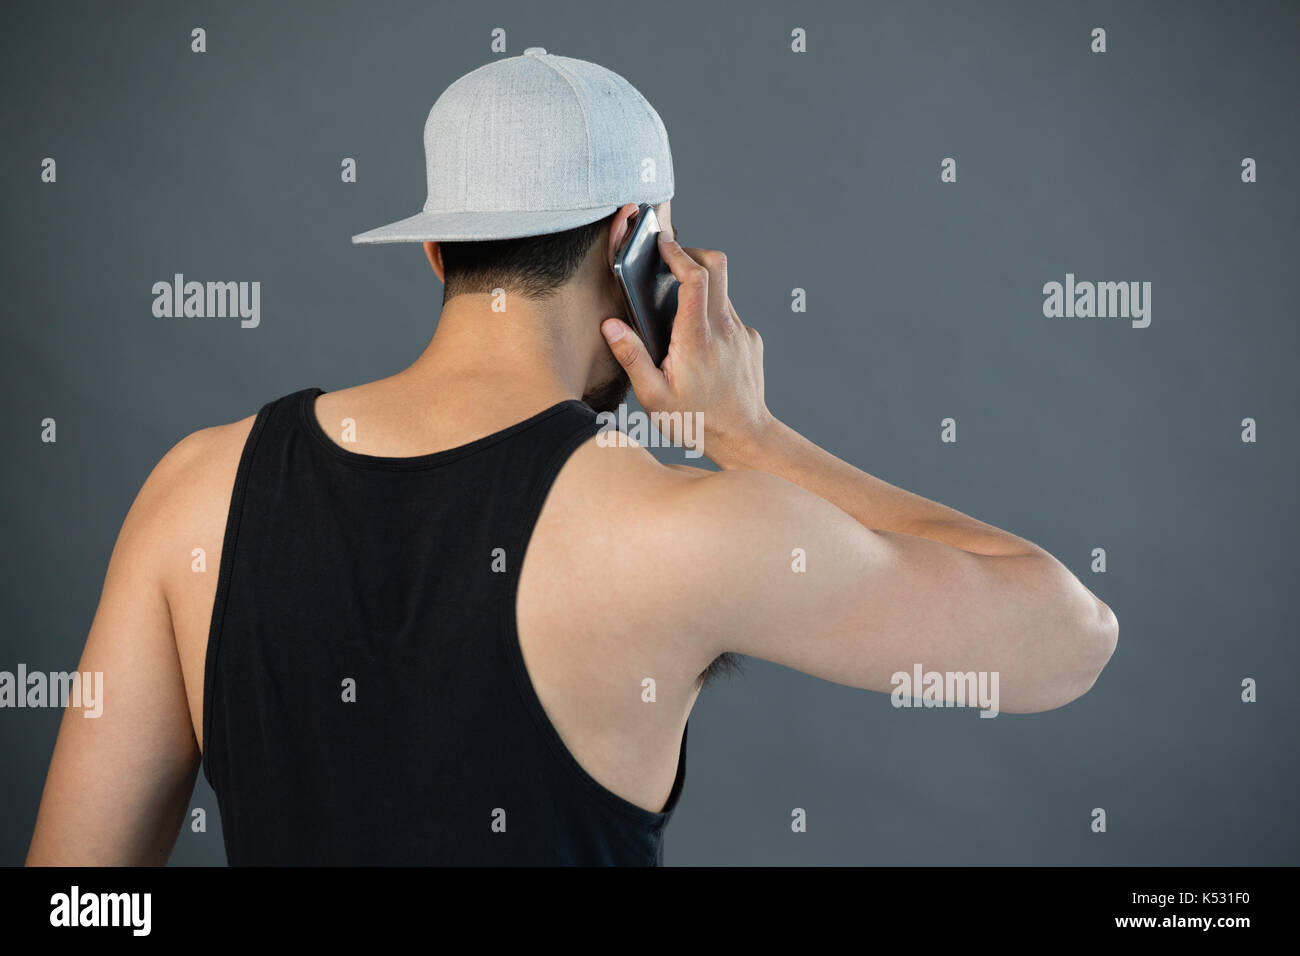 Rear view of man talking on mobile phone against grey background Stock Photo